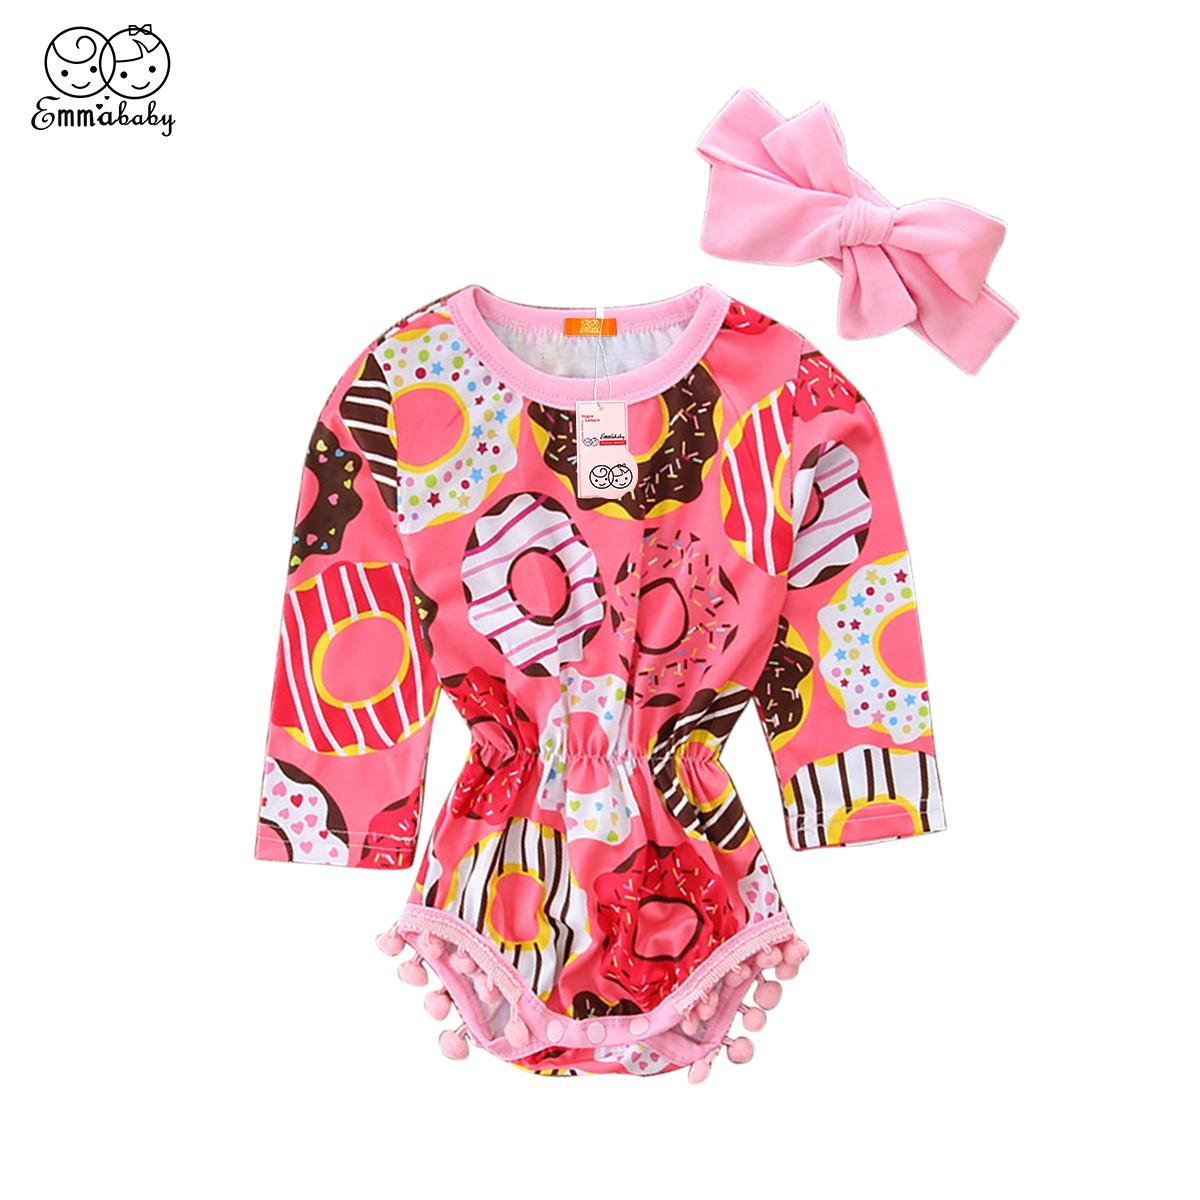 2PCS Cute Newborn Baby Girls Floral Tassels Long Sleeve Bodysuits Jumpsuit Outfits Headband Set Clothes 0-2T